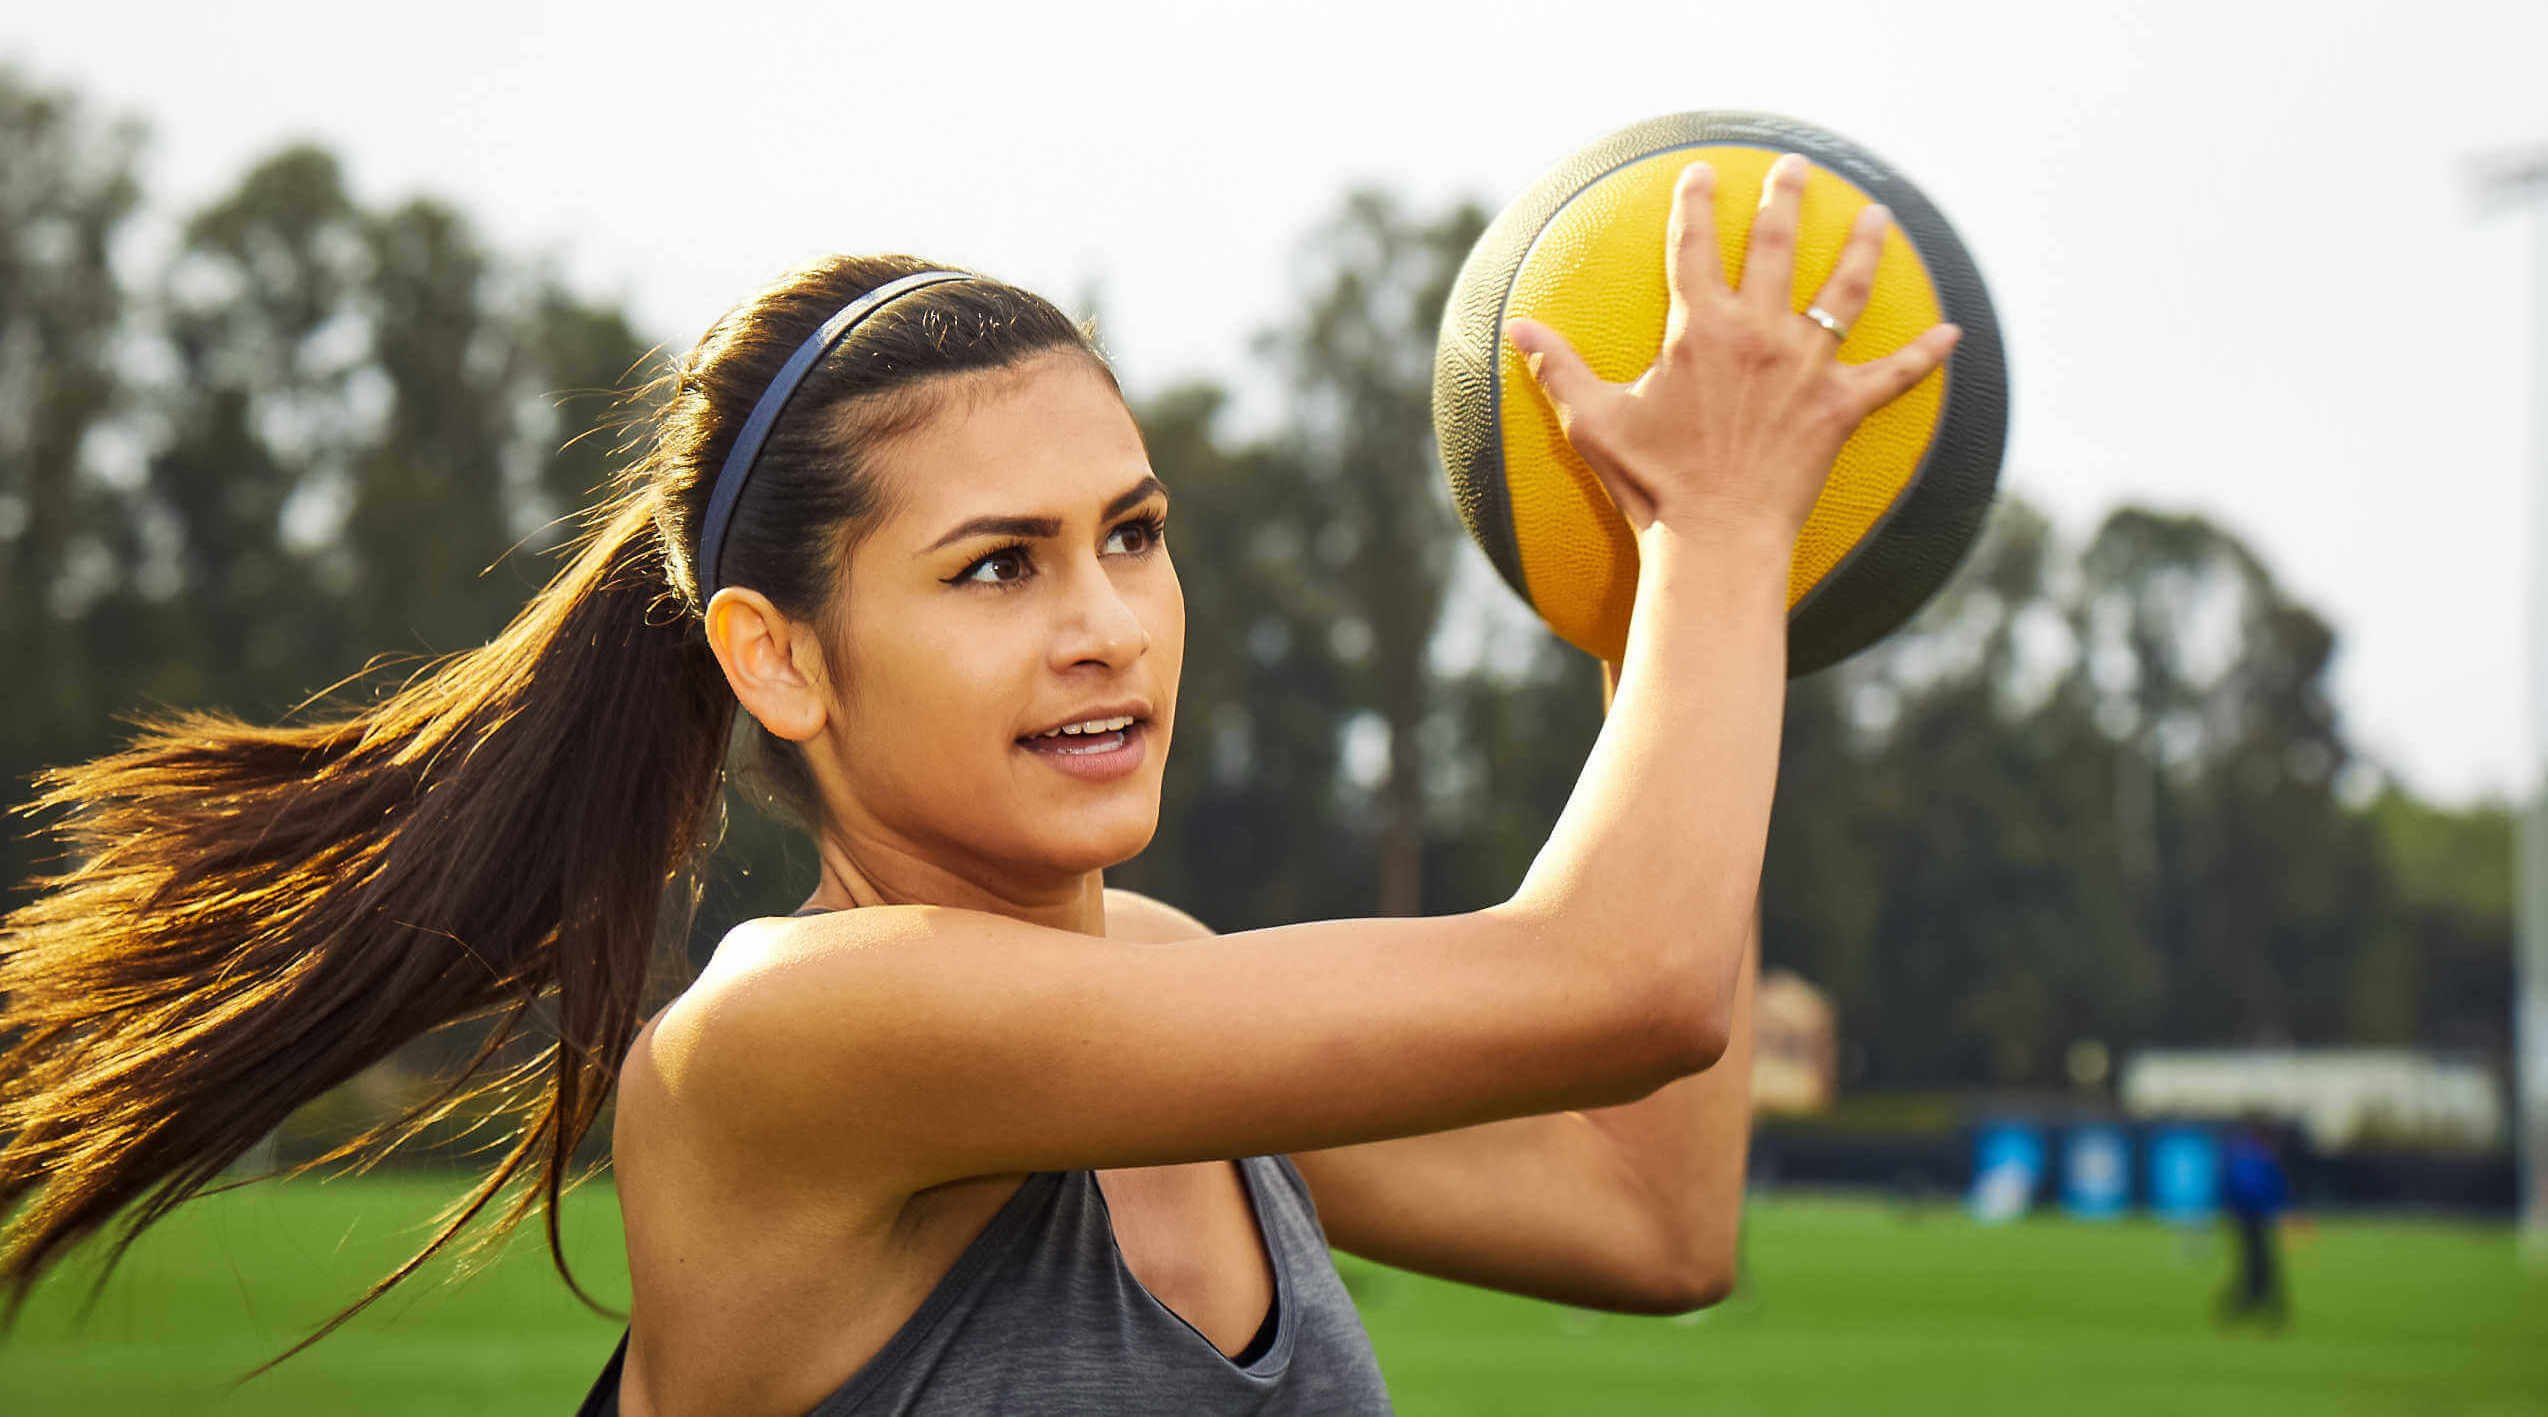 Woman holding up a medicine ball